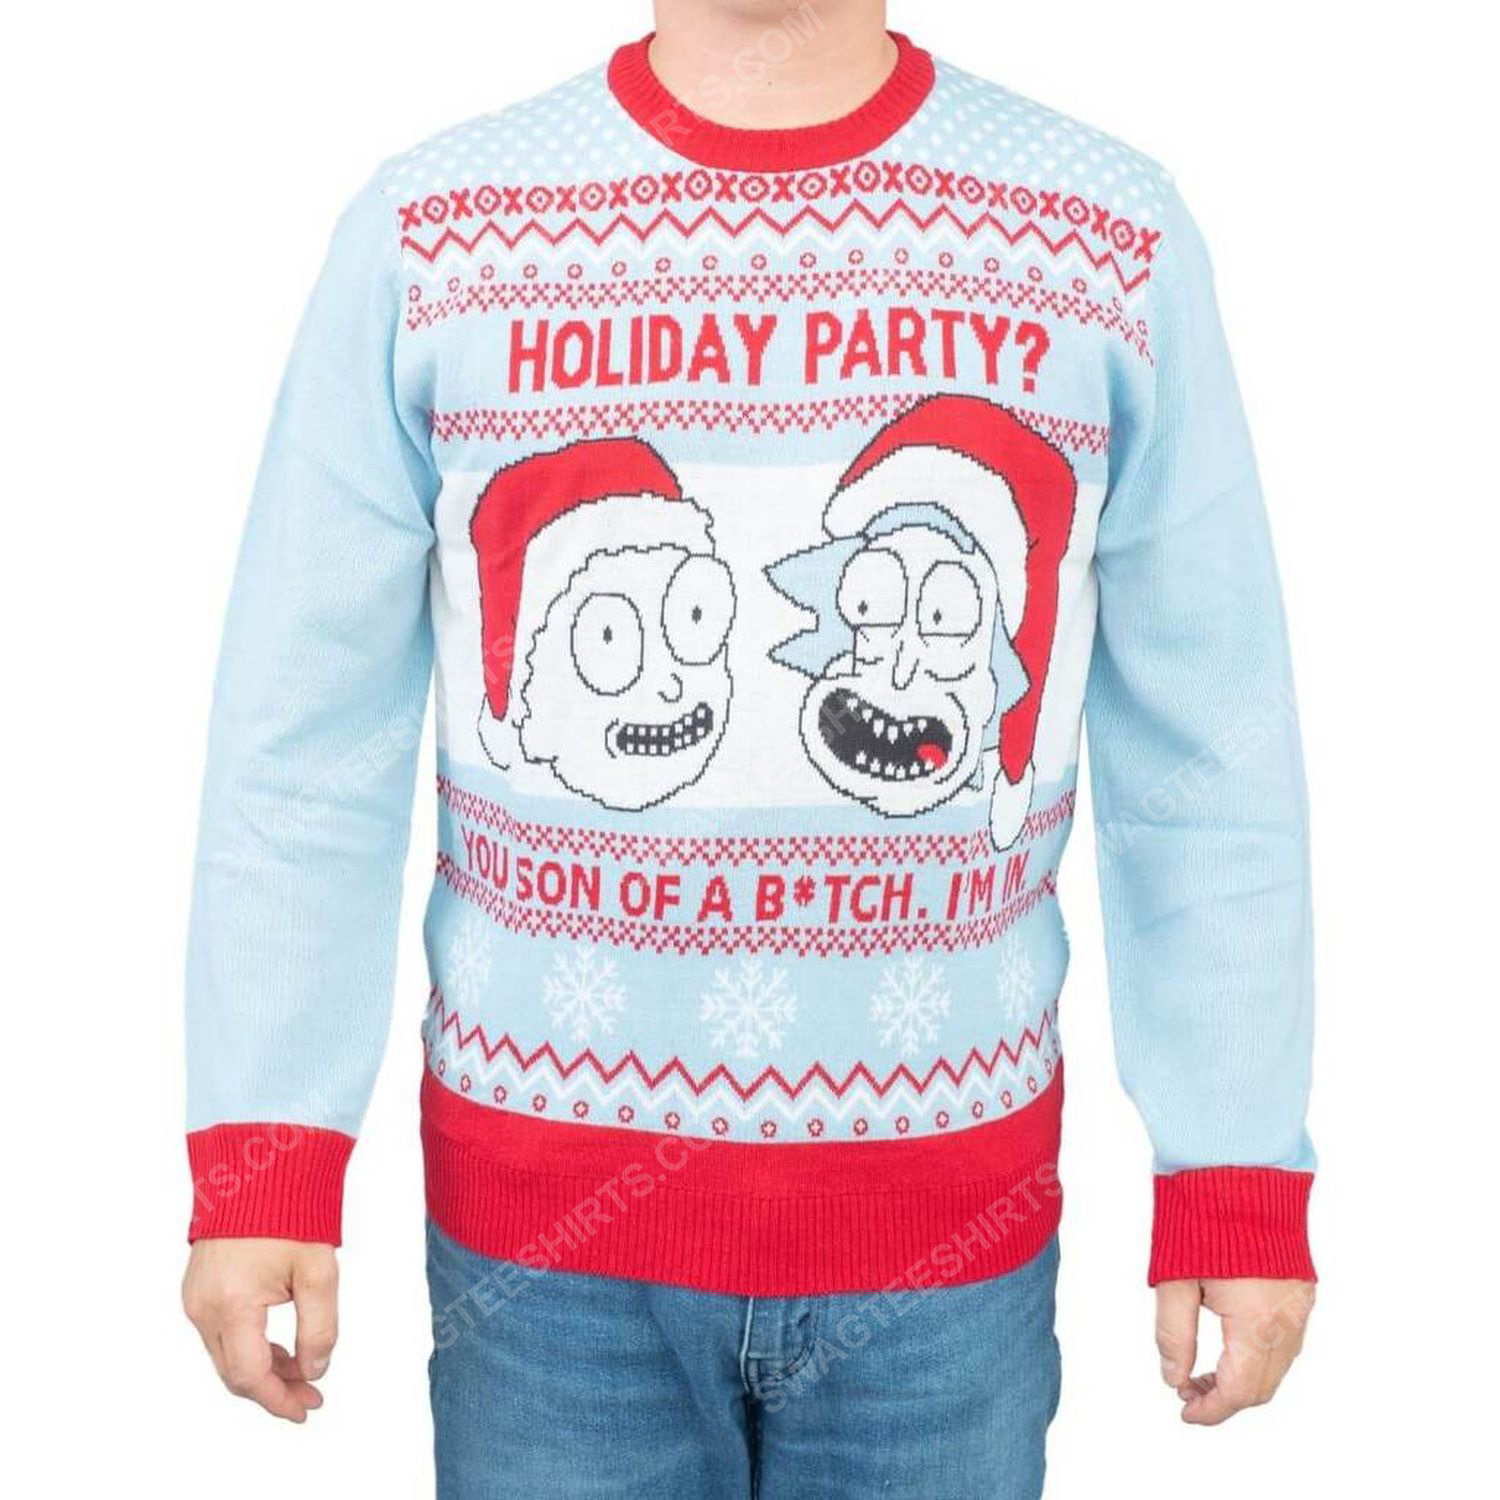 Rick and morty holiday party you son of a bitch i'm in full print ugly christmas sweater 2 - Copy